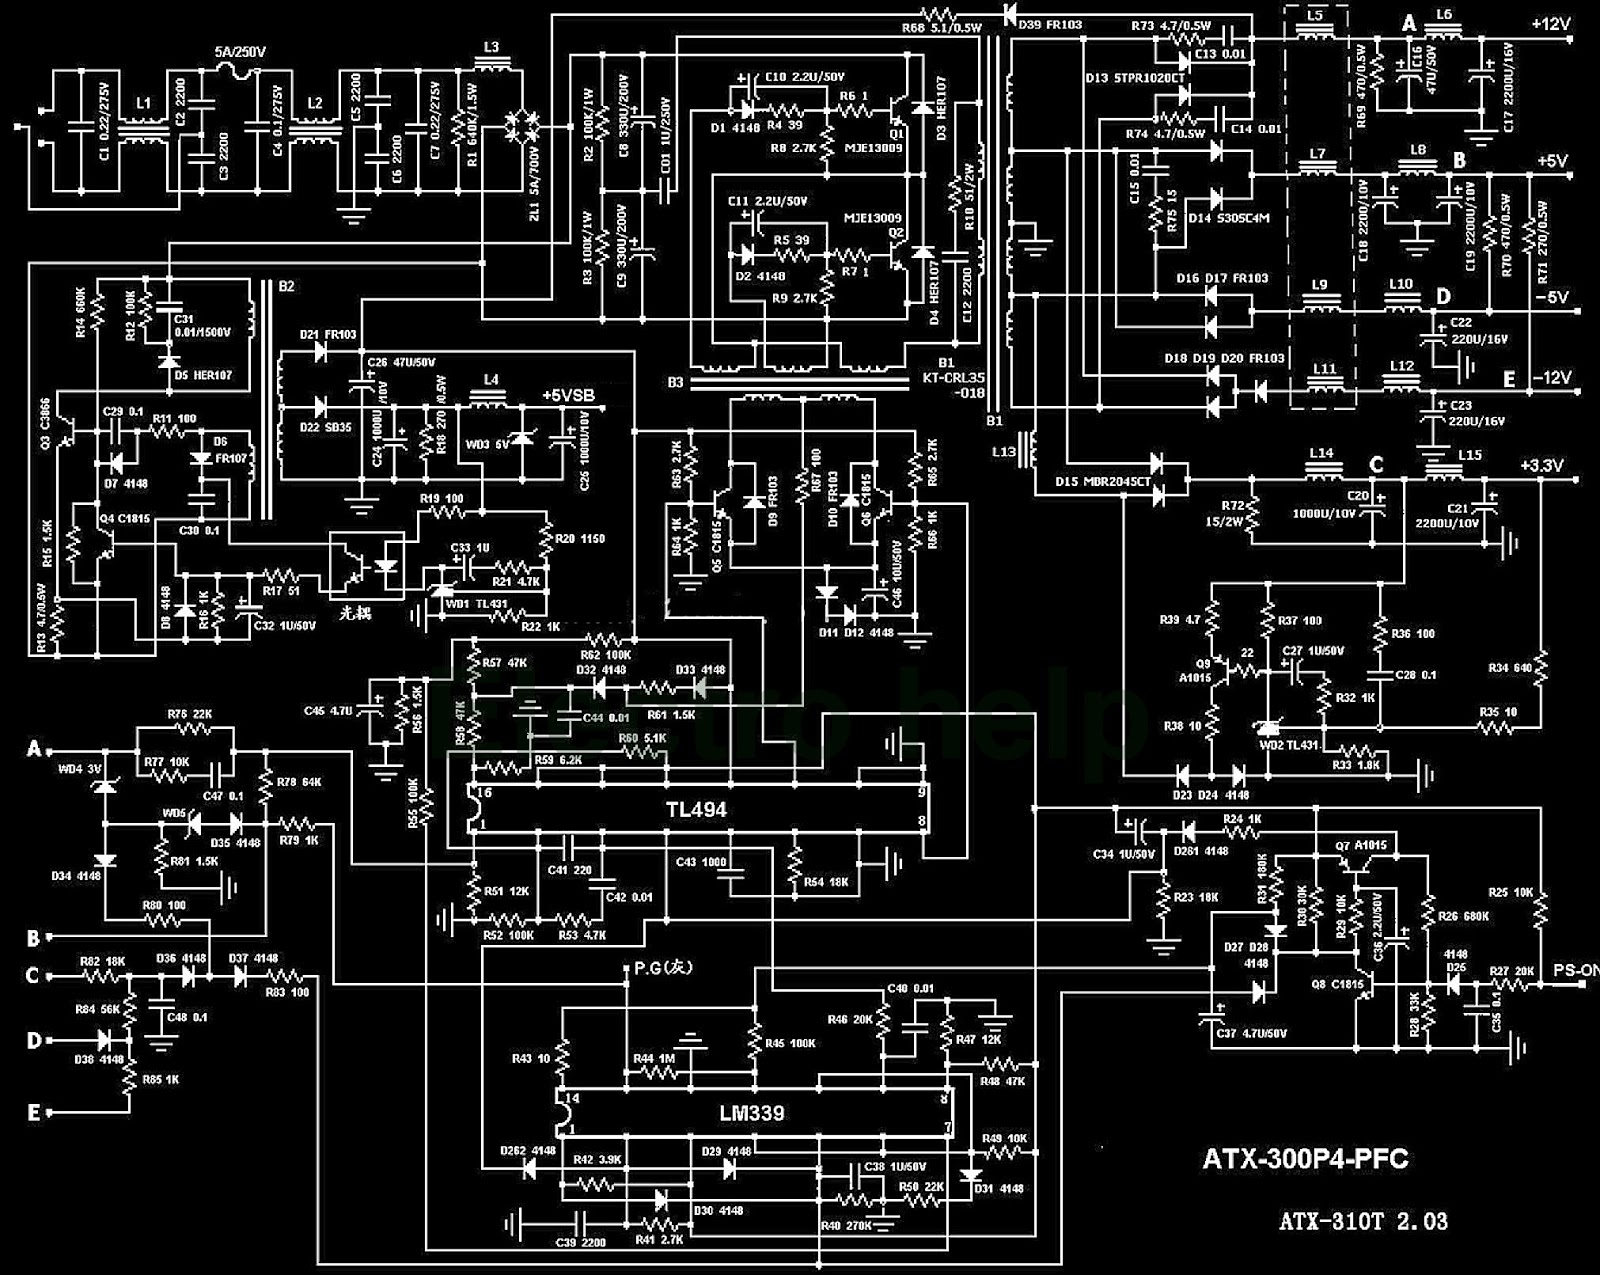 pc power supply wiring diagram communication powerpoint atx desktop computers atx300p4